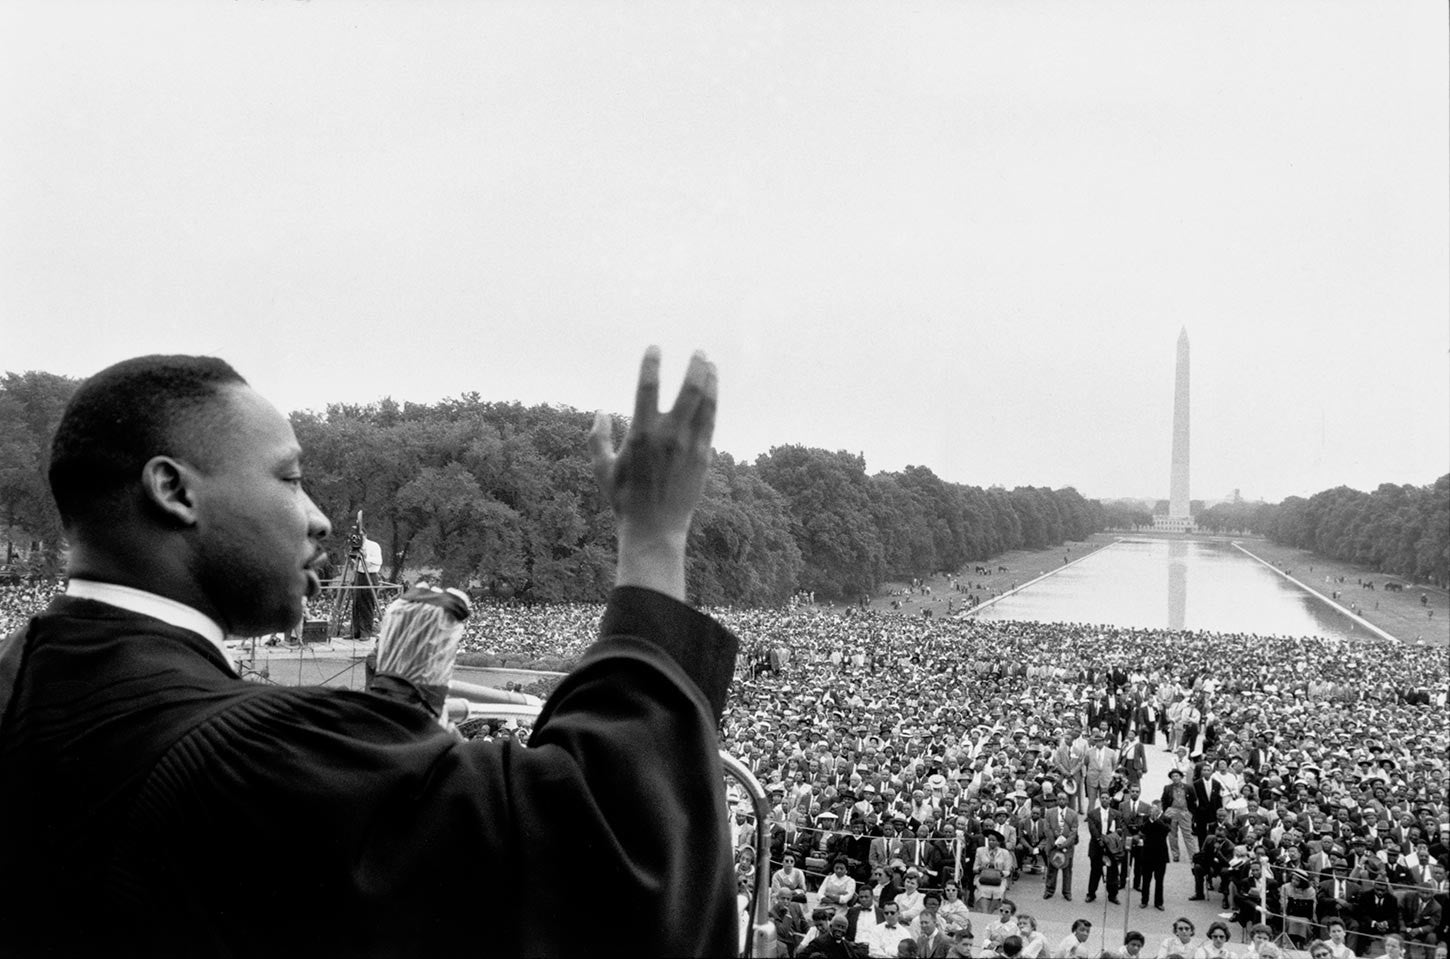 Martin Luther King speaking to crowds at the Prayer Pilgrimage for Freedom. Washington, 1957.